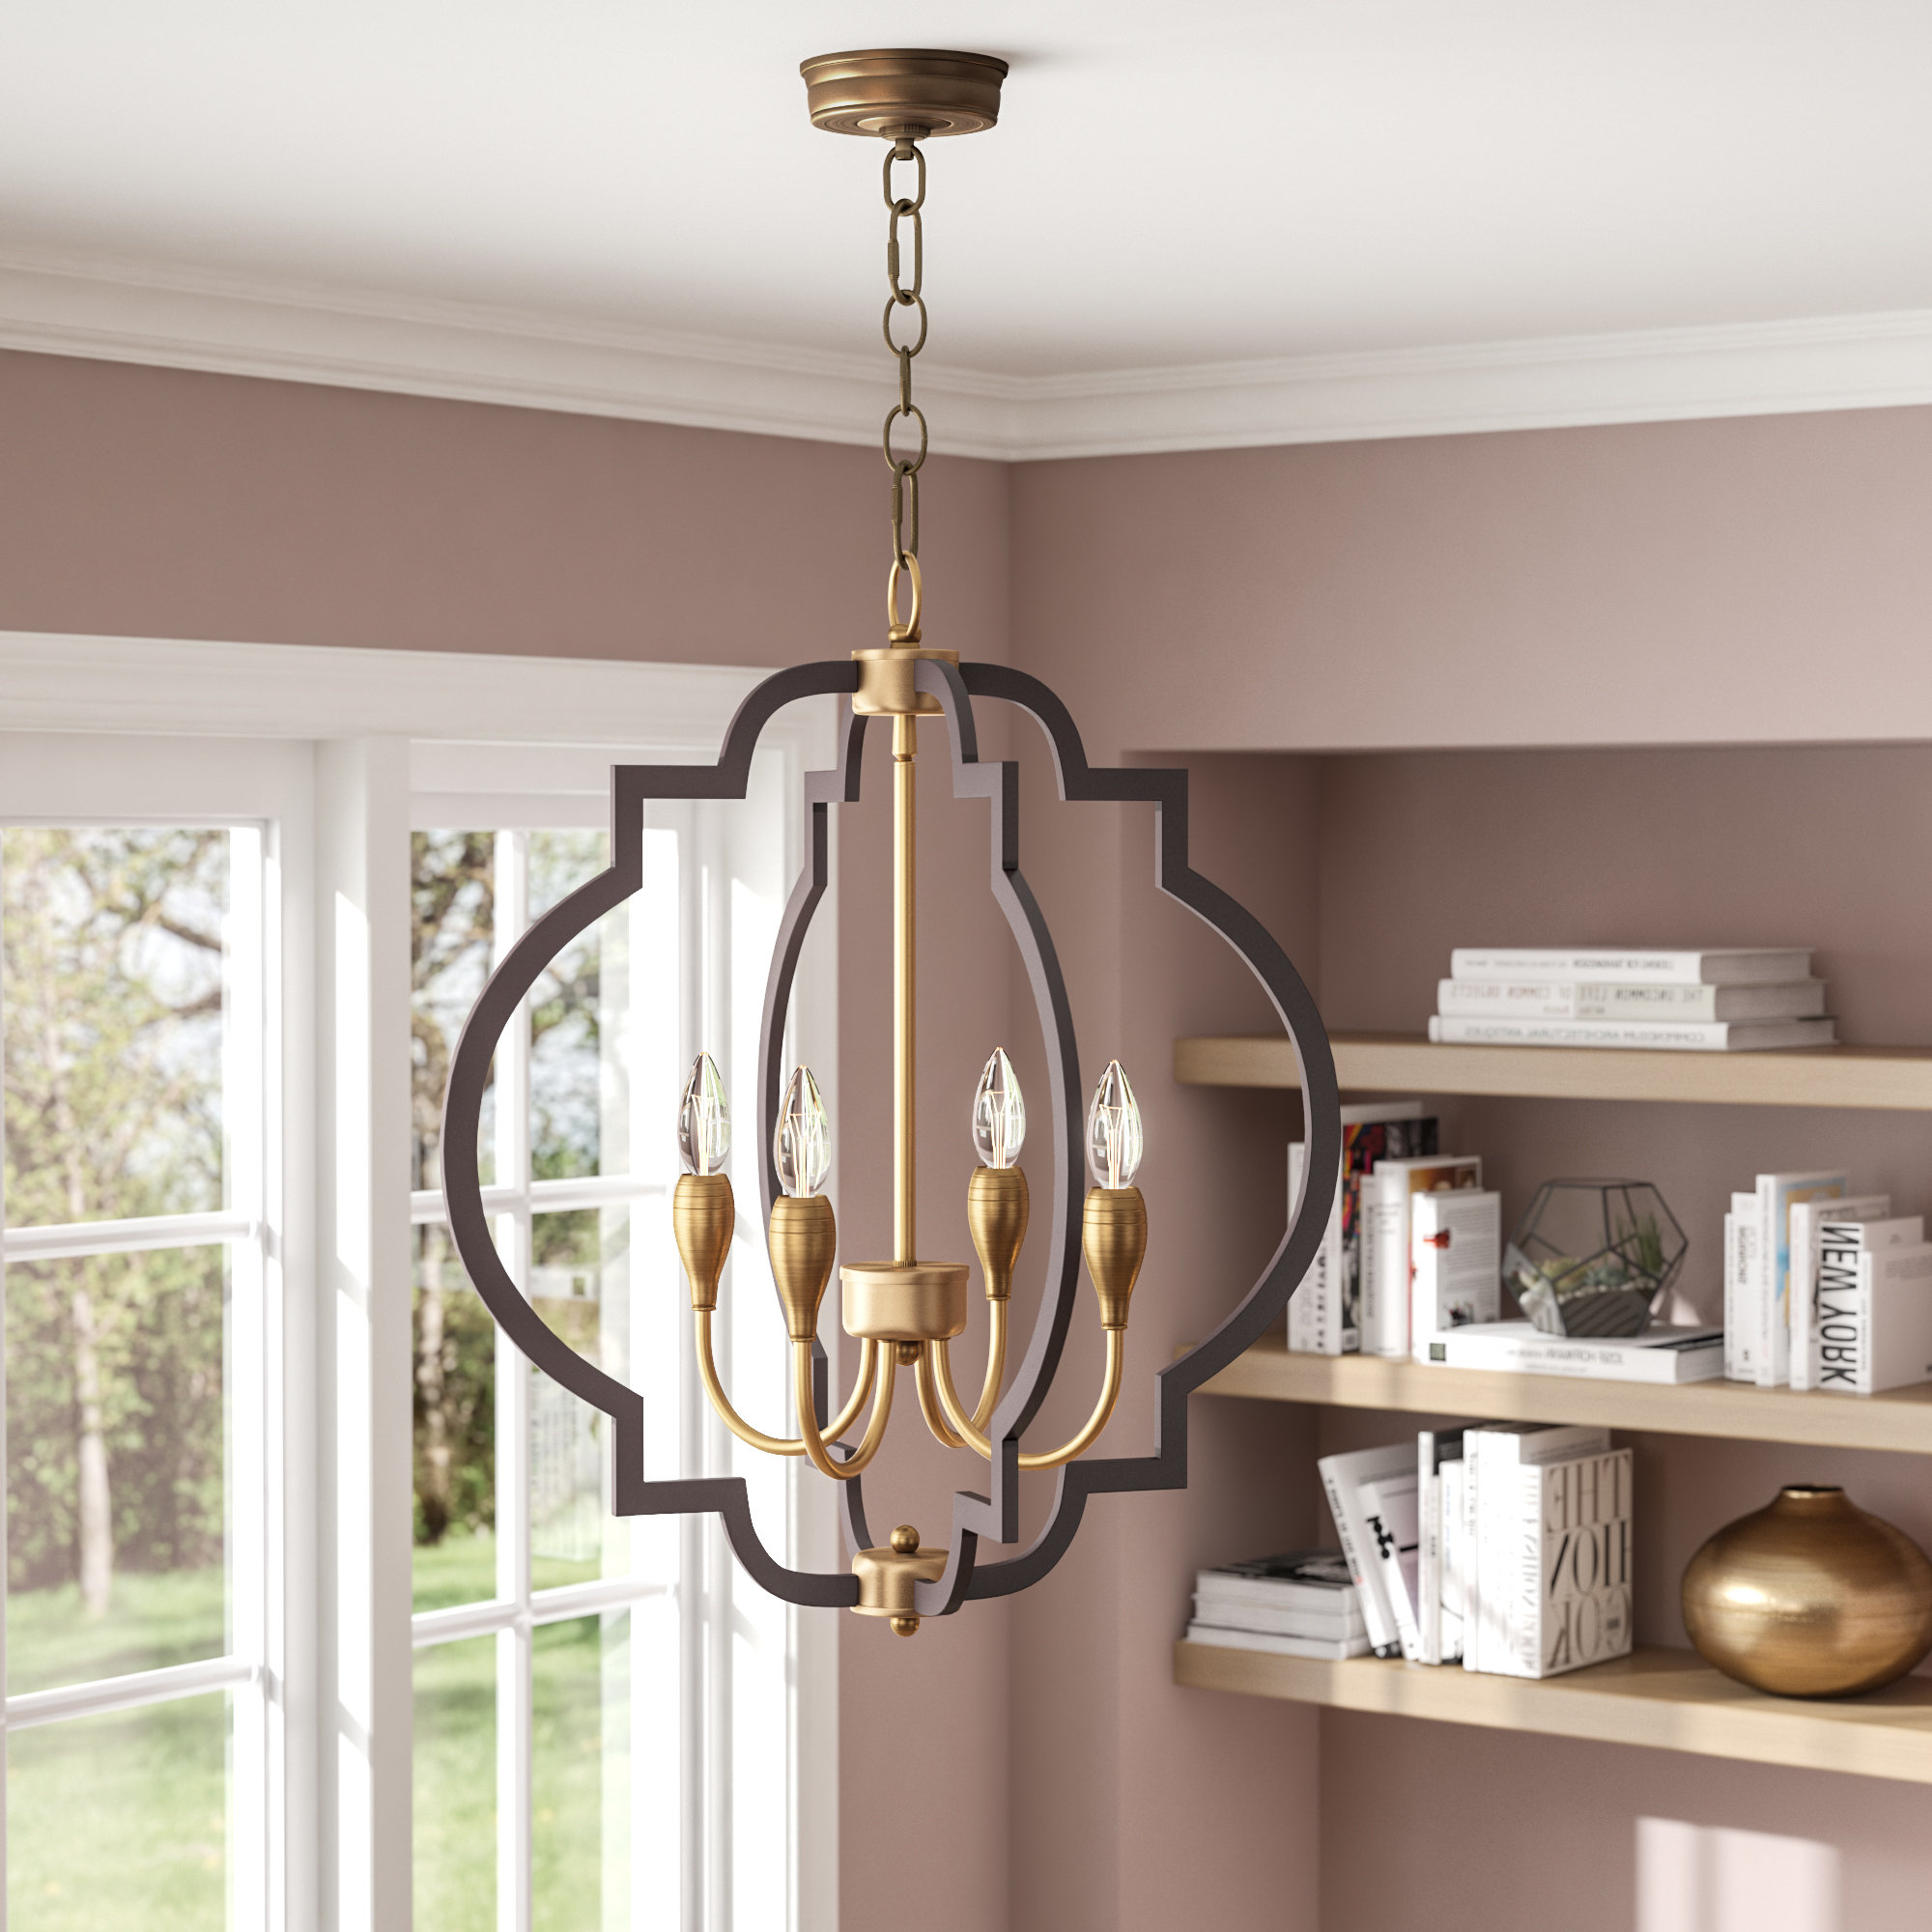 Astin 4 Light Geometric Chandelier For Most Recently Released Kaycee 4 Light Geometric Chandeliers (View 3 of 25)